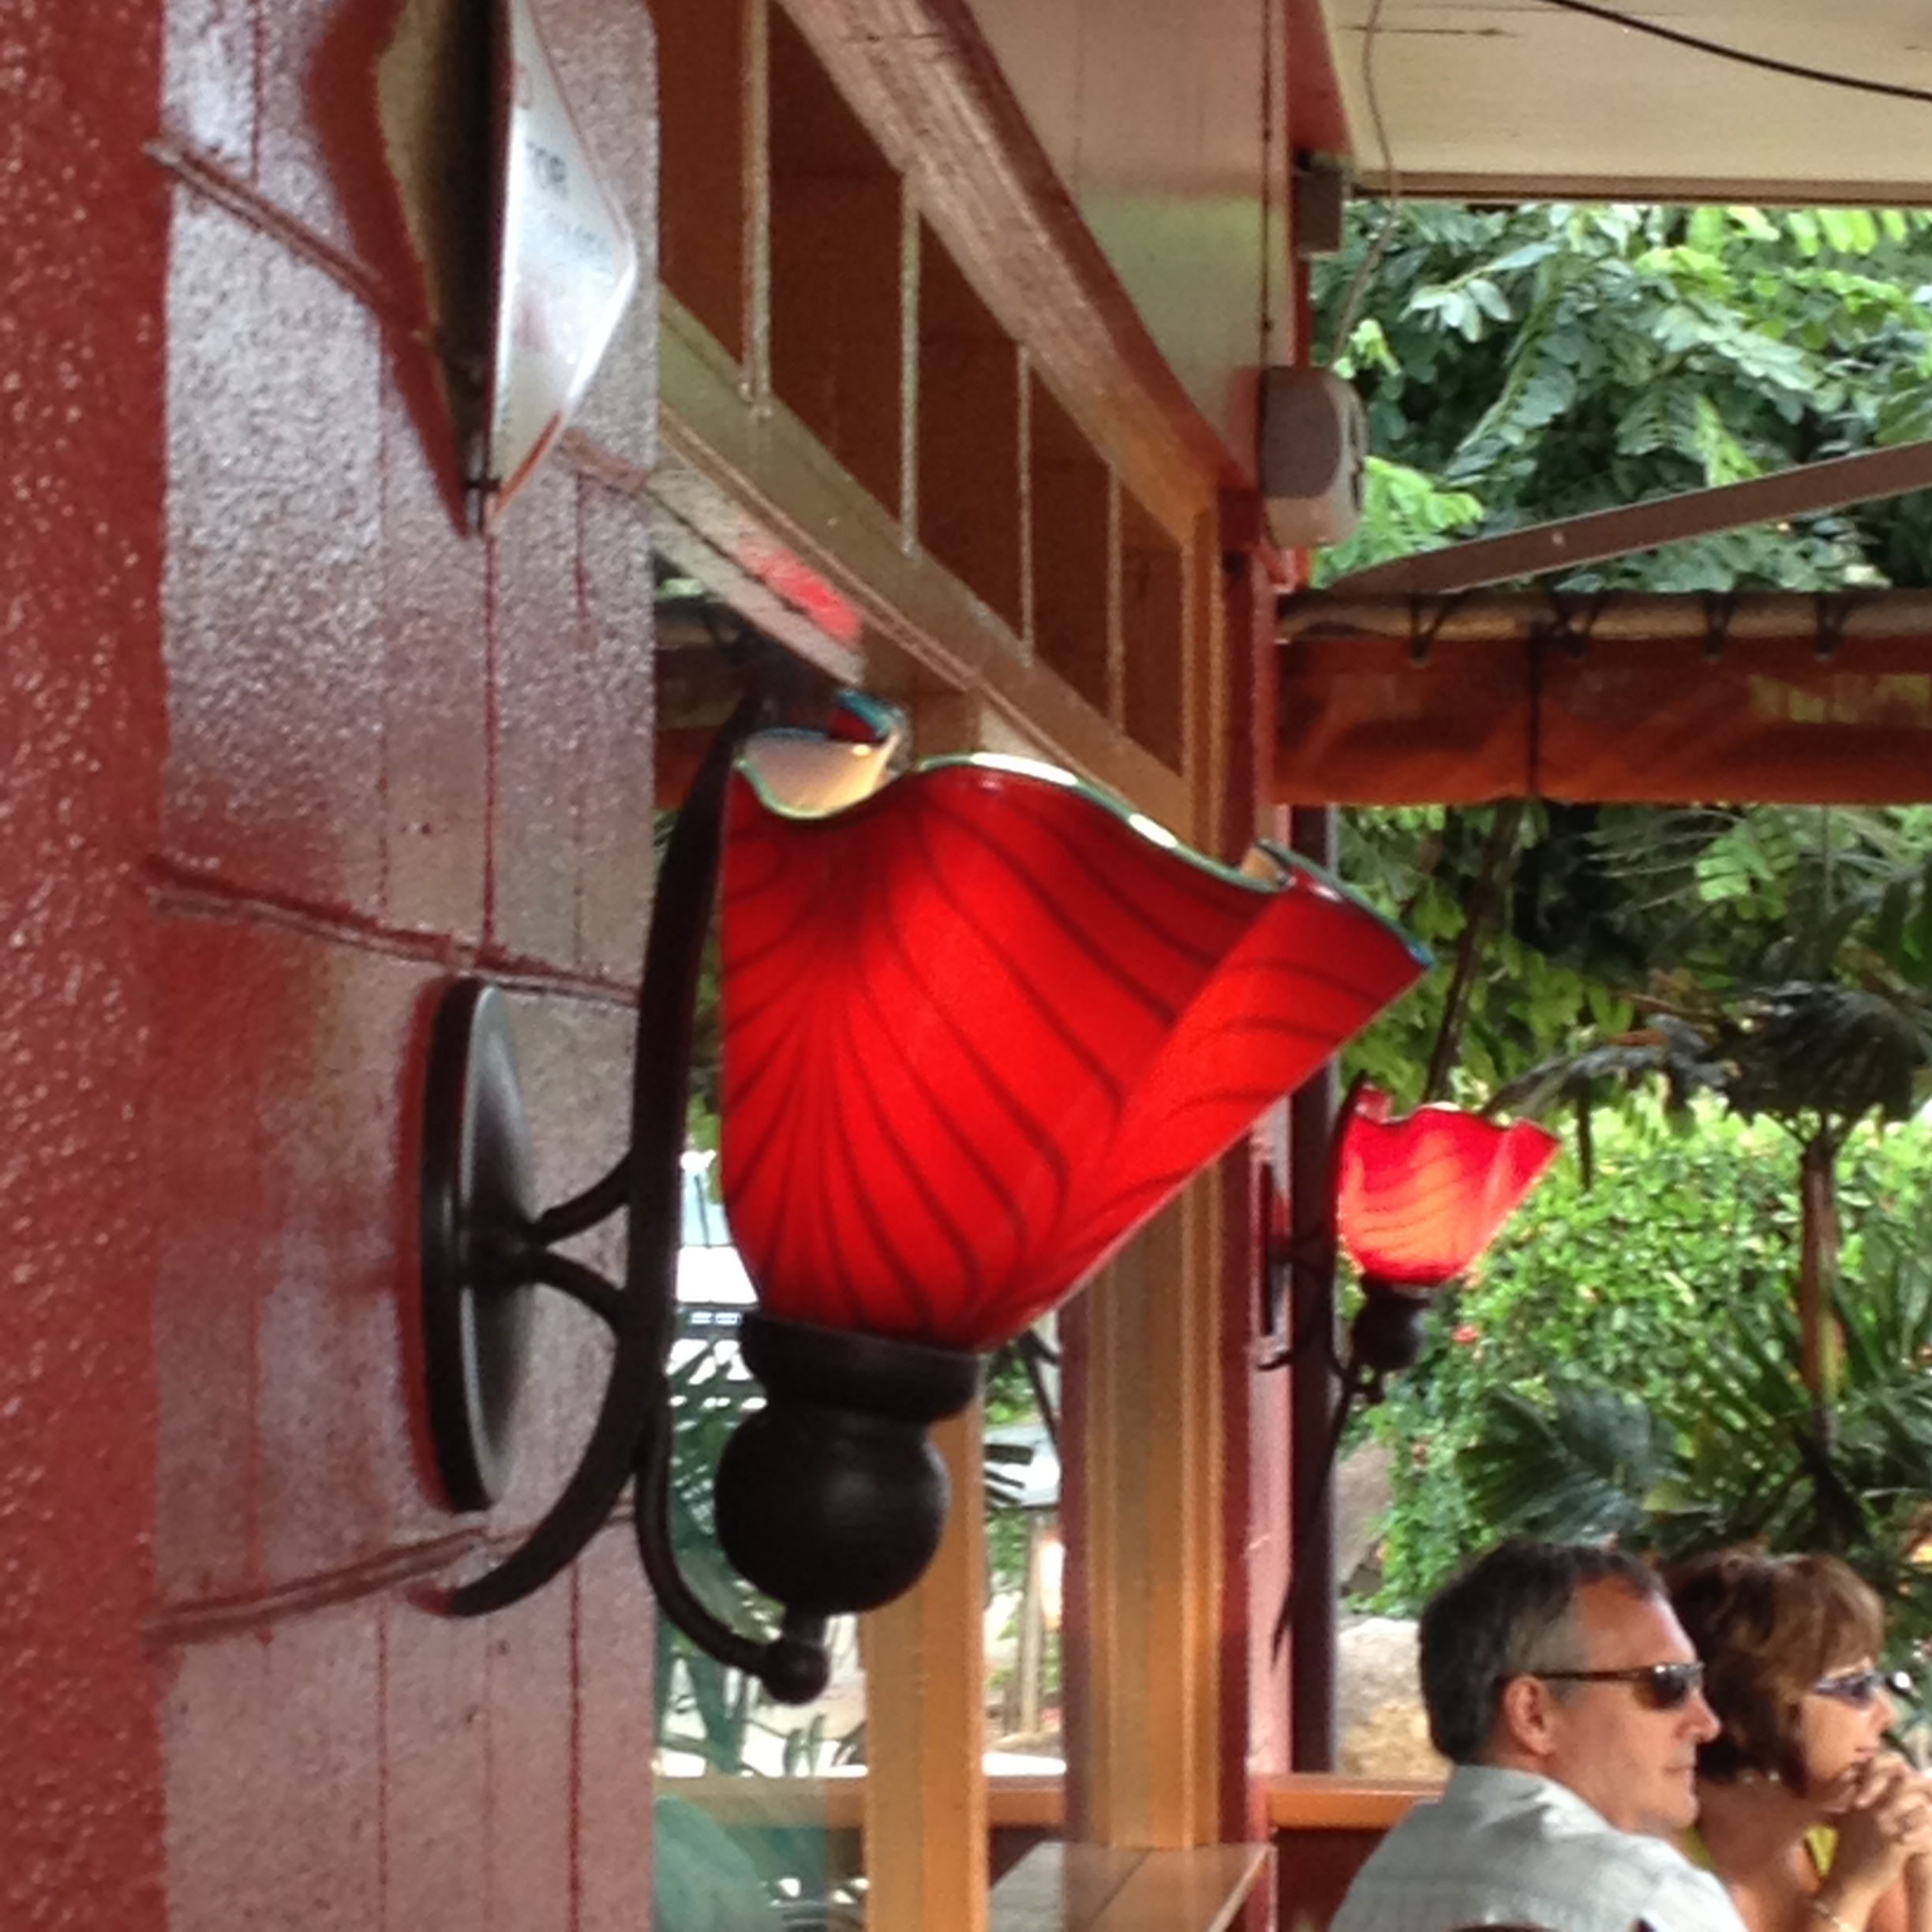 Ruby Ruffle Wall Sconces at Milagro's in Paia Maui, Hawaii.  good food, outdoor dining and fun in Paia. Strini Art Glass 2014